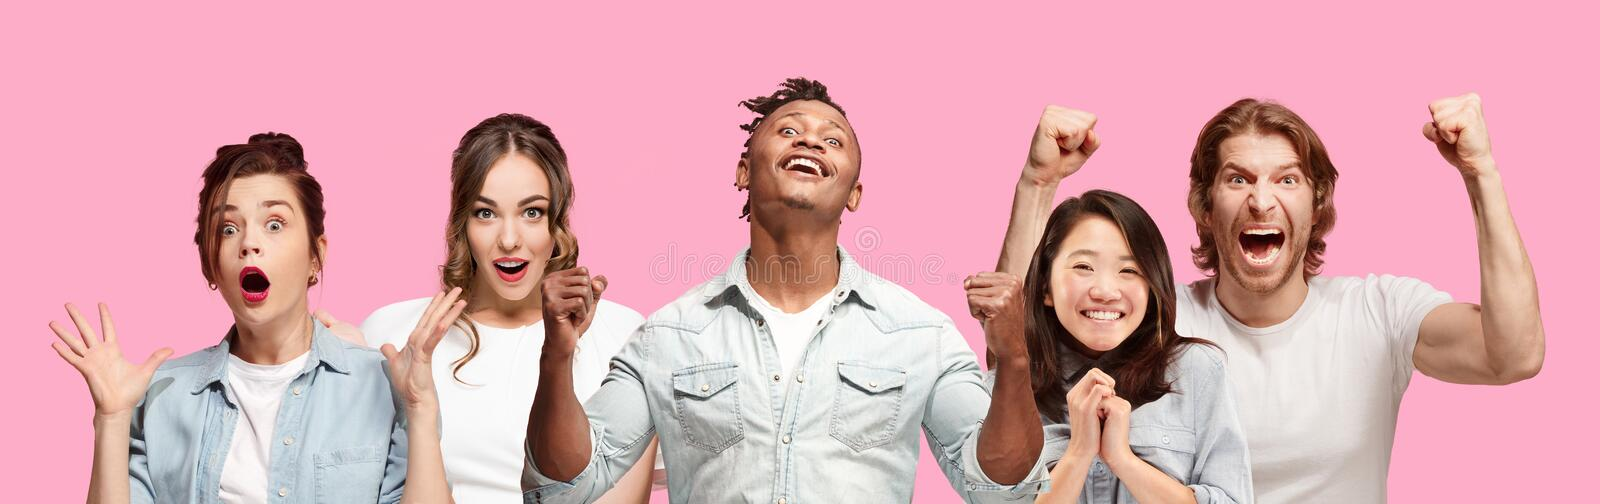 Half-length close up portrait of young people on pink background. royalty free stock photo